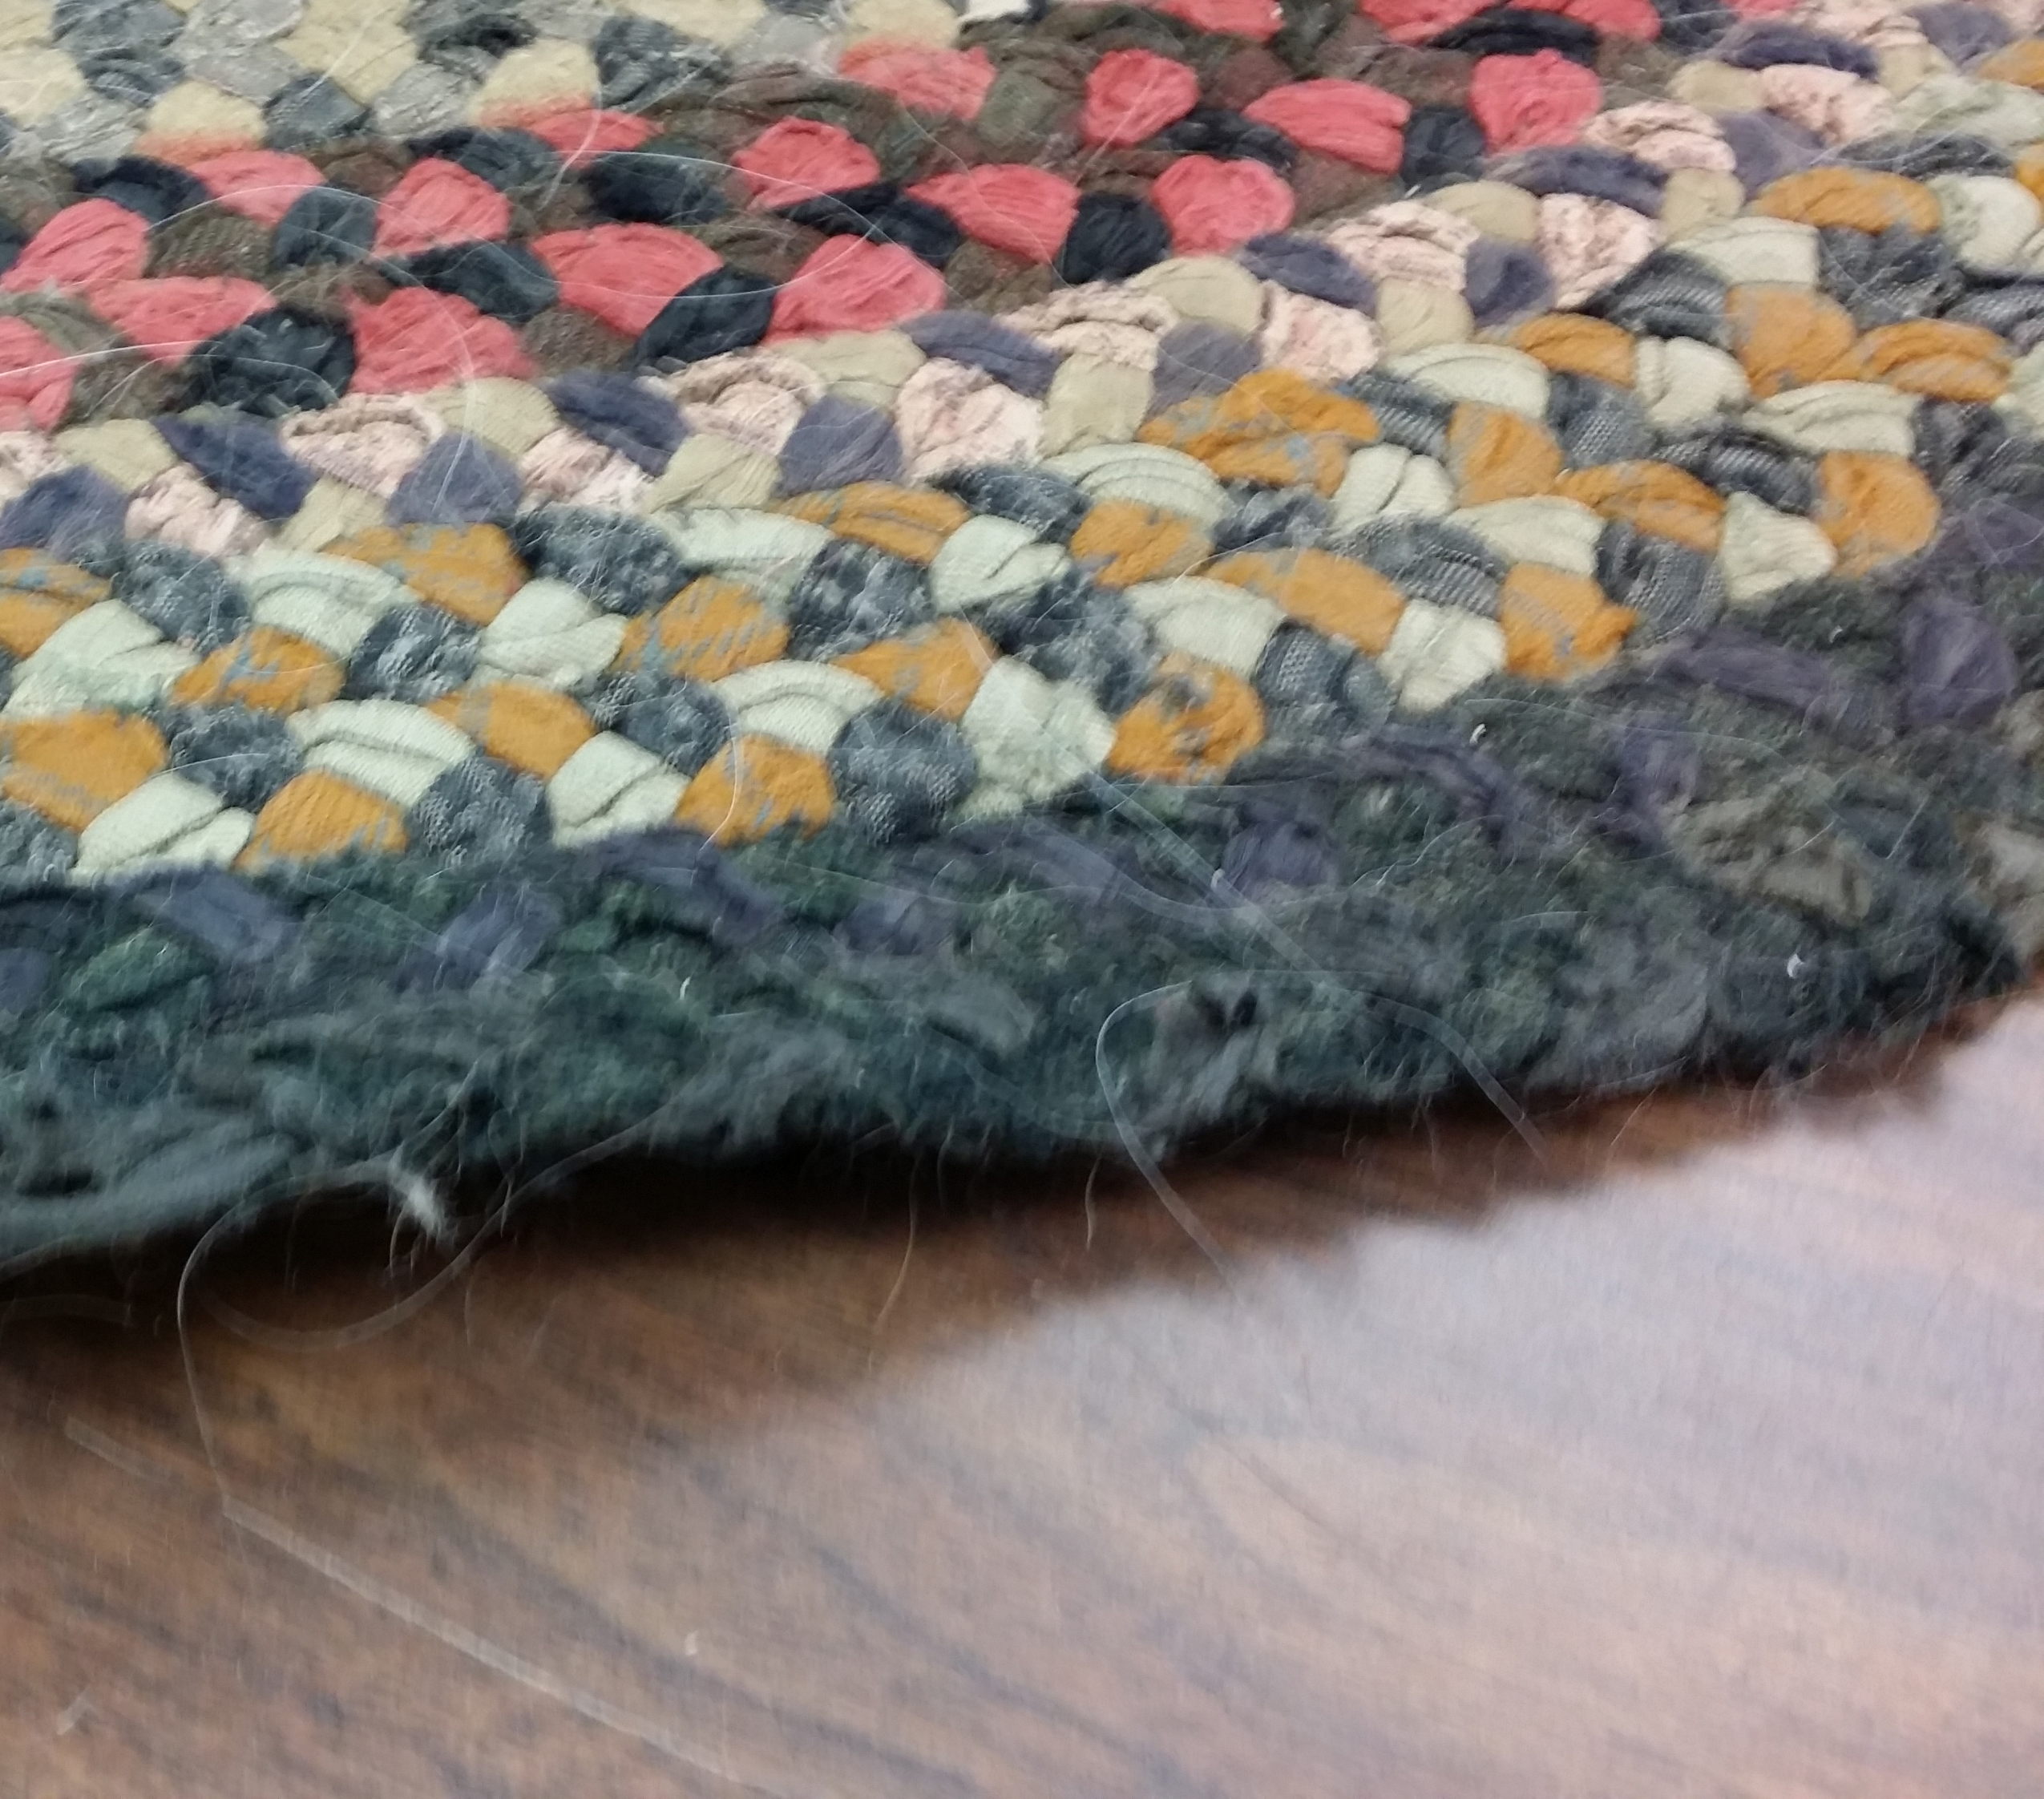 Braided Rug - After